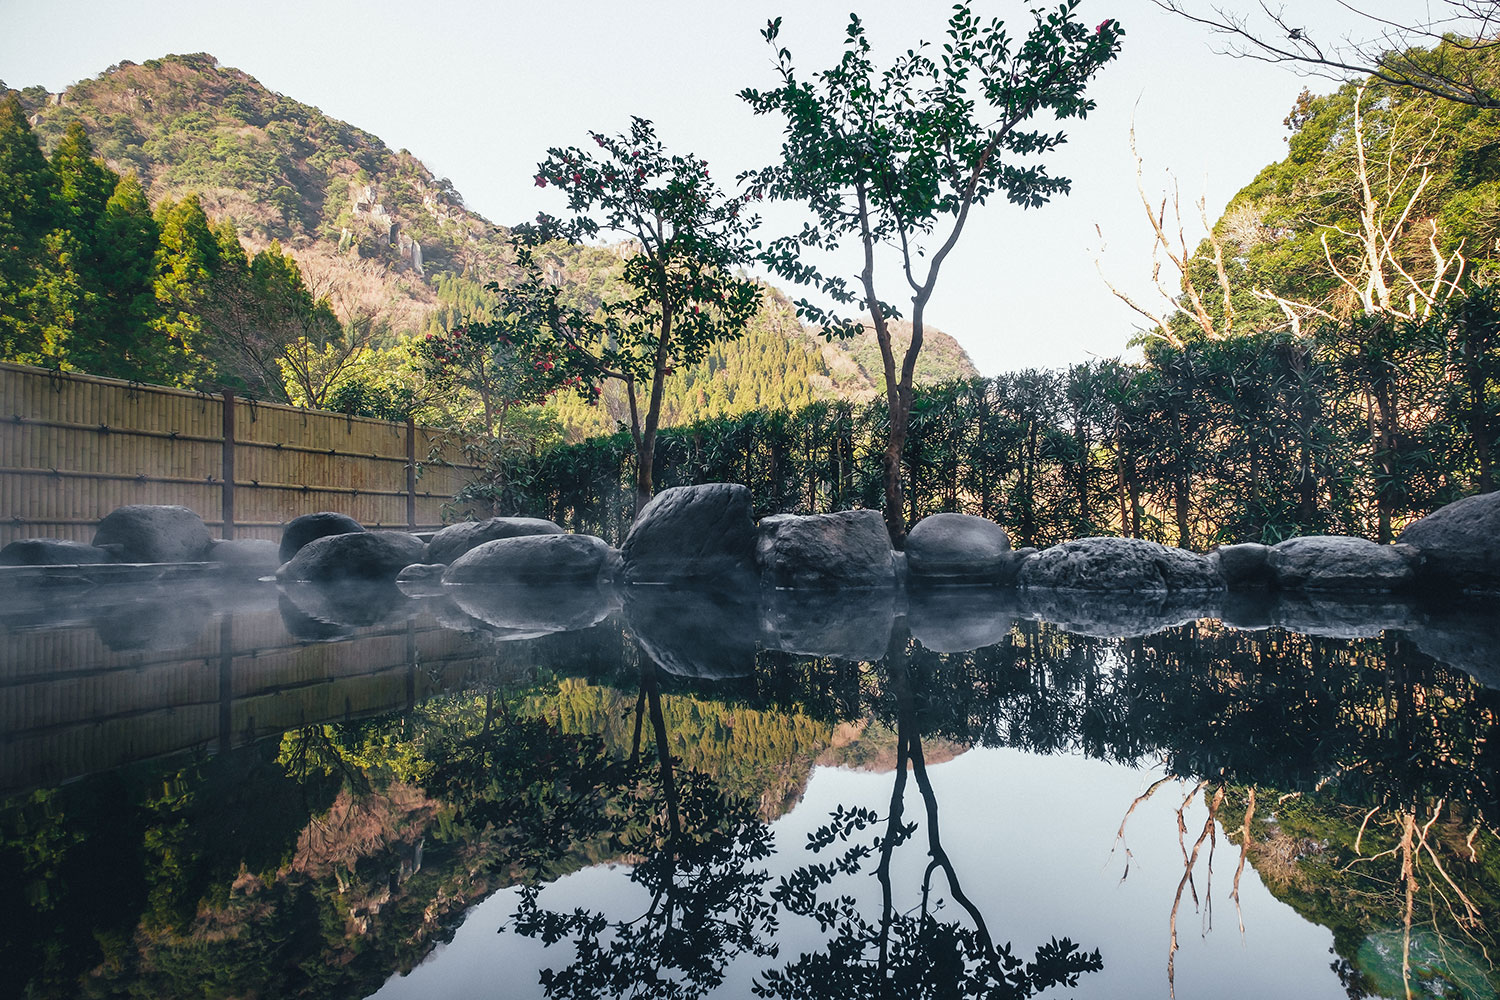 Open-Air Hot Spring Baths in the Shadow of Strangely Shaped Rock Formations